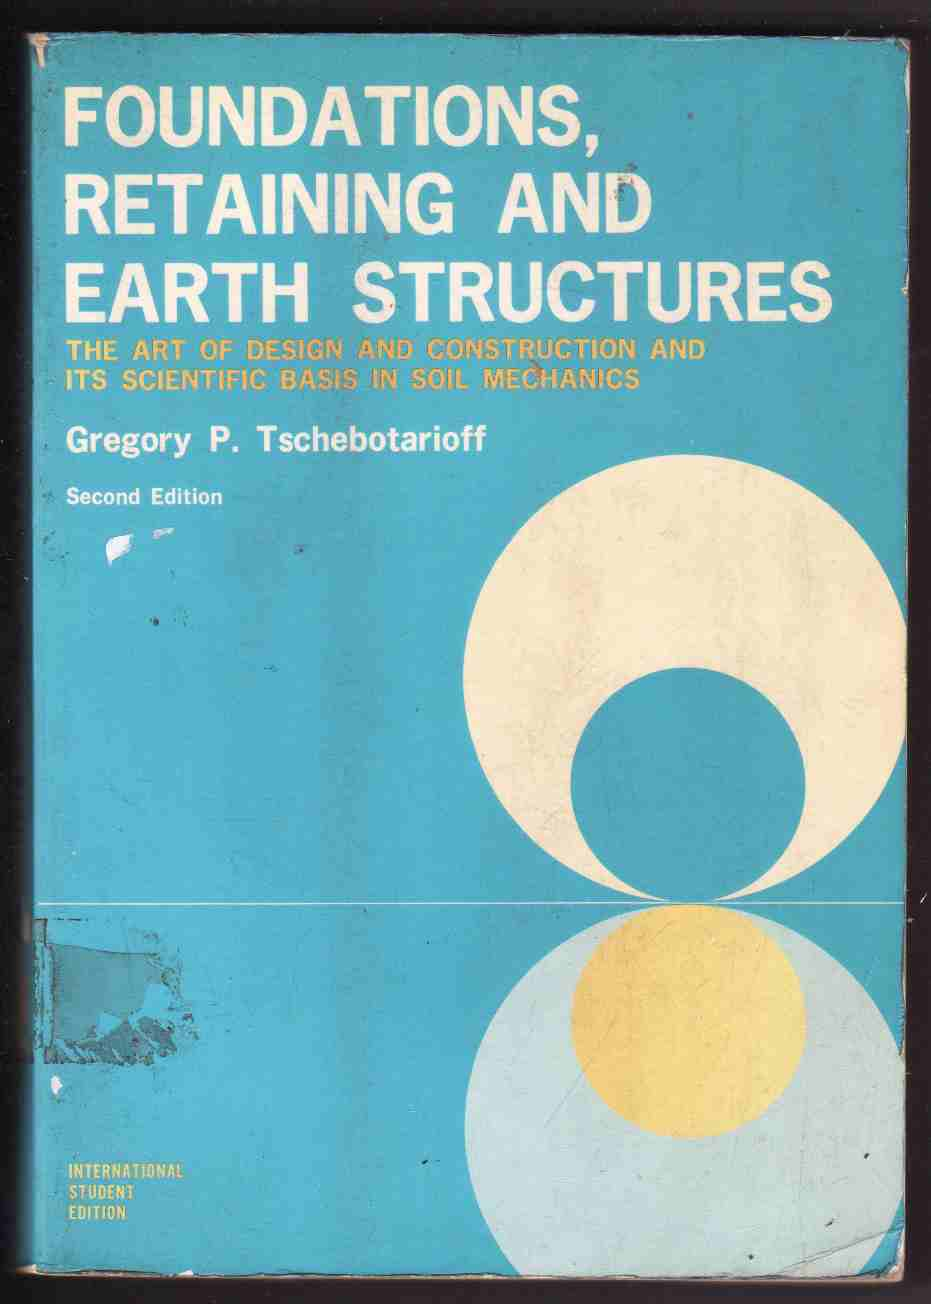 Foundations, Retaining and Earth Structures